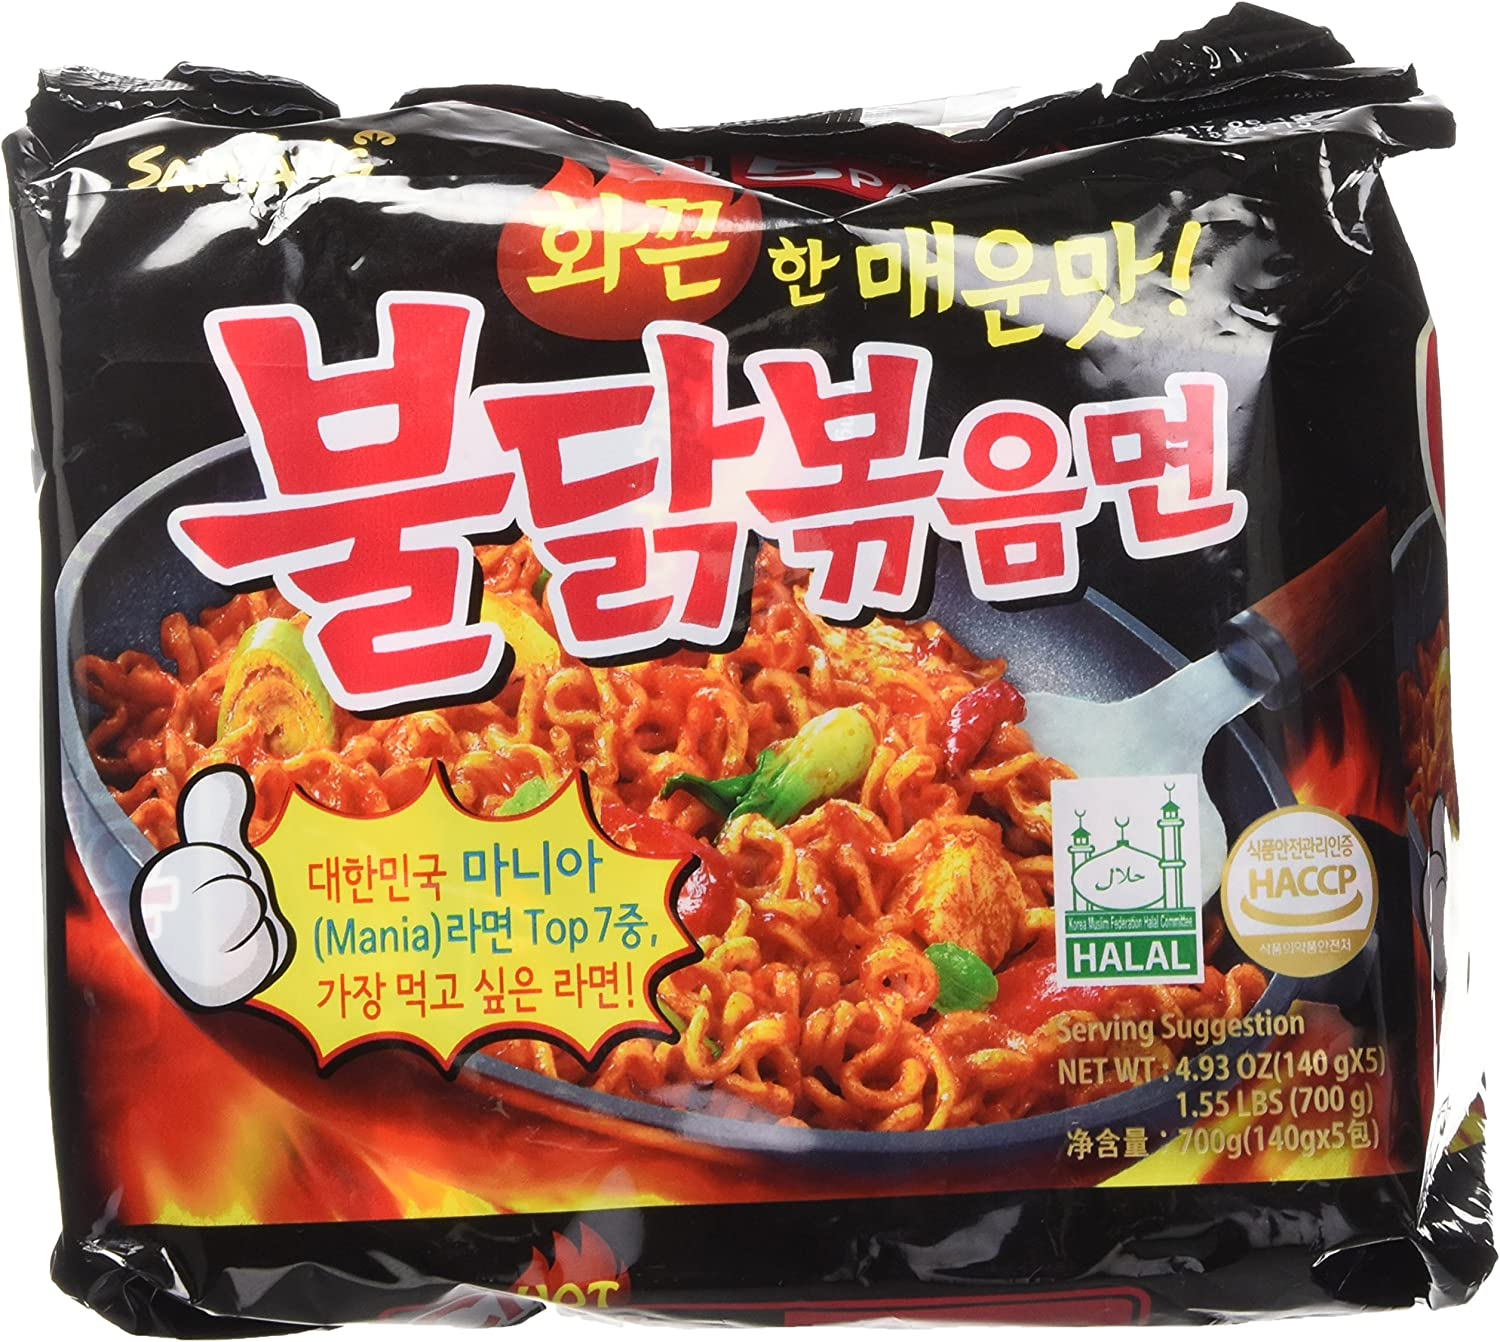 Samyang-Ramen-Chicken-Roasted-Noodles